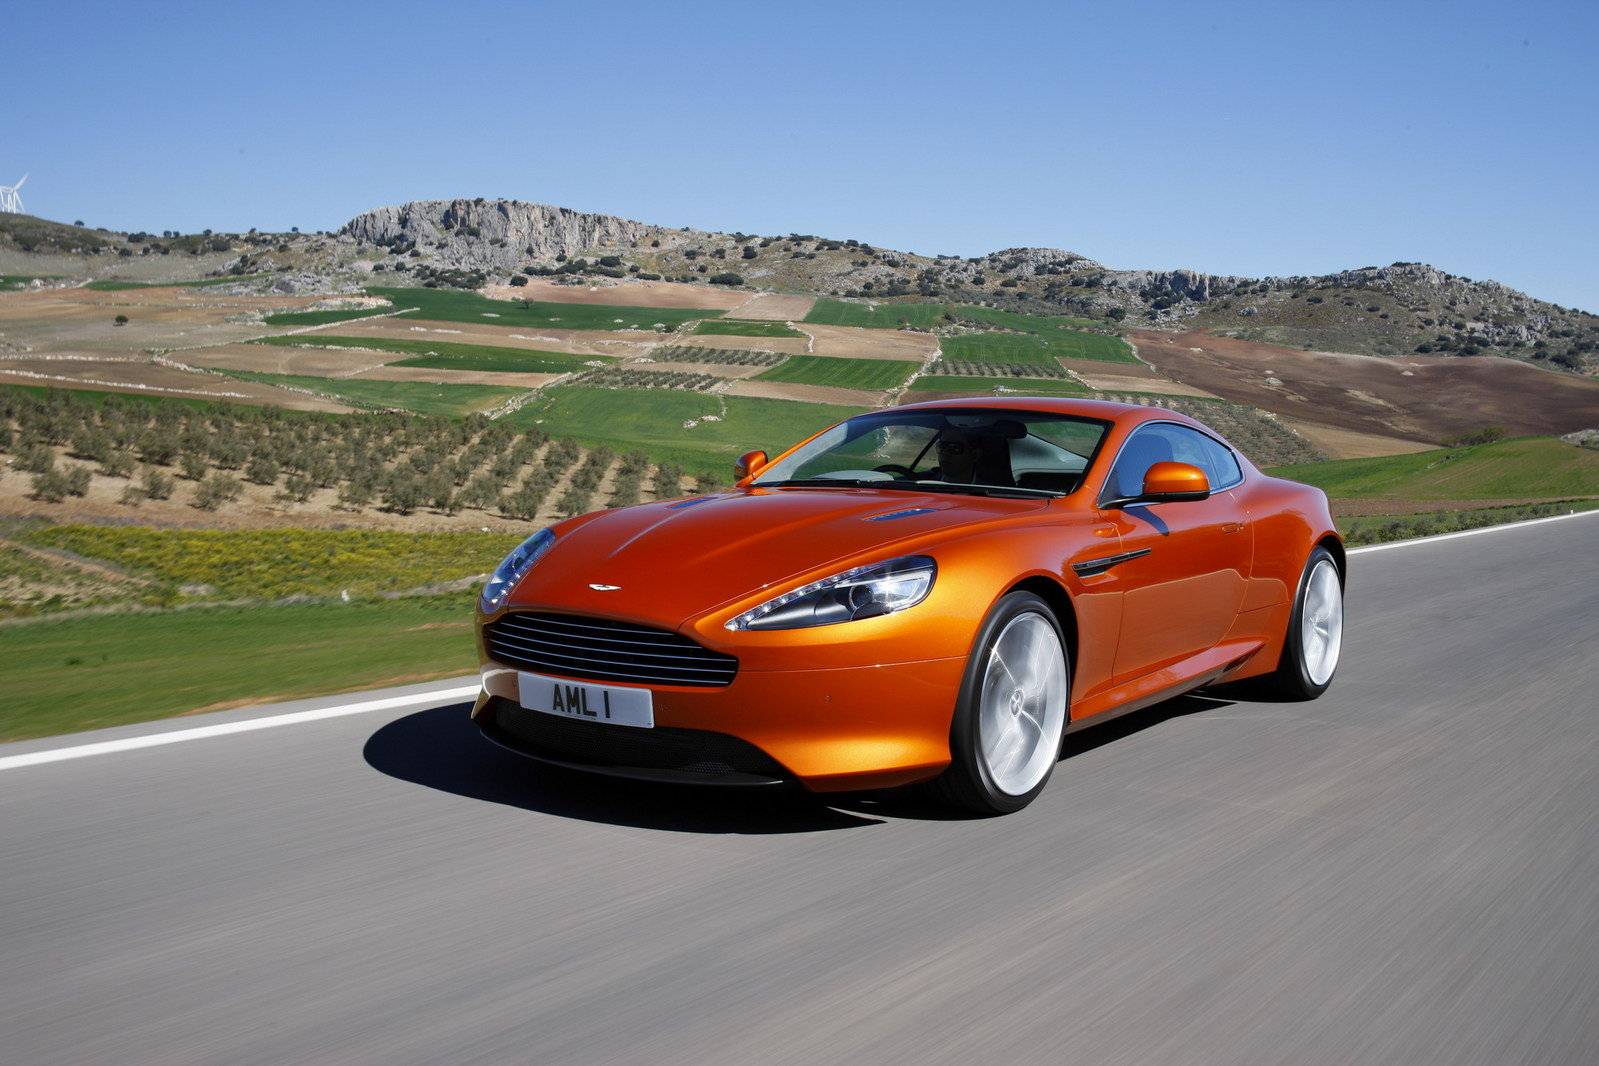 2012 aston martin virage picture 397246 car review top speed. Cars Review. Best American Auto & Cars Review